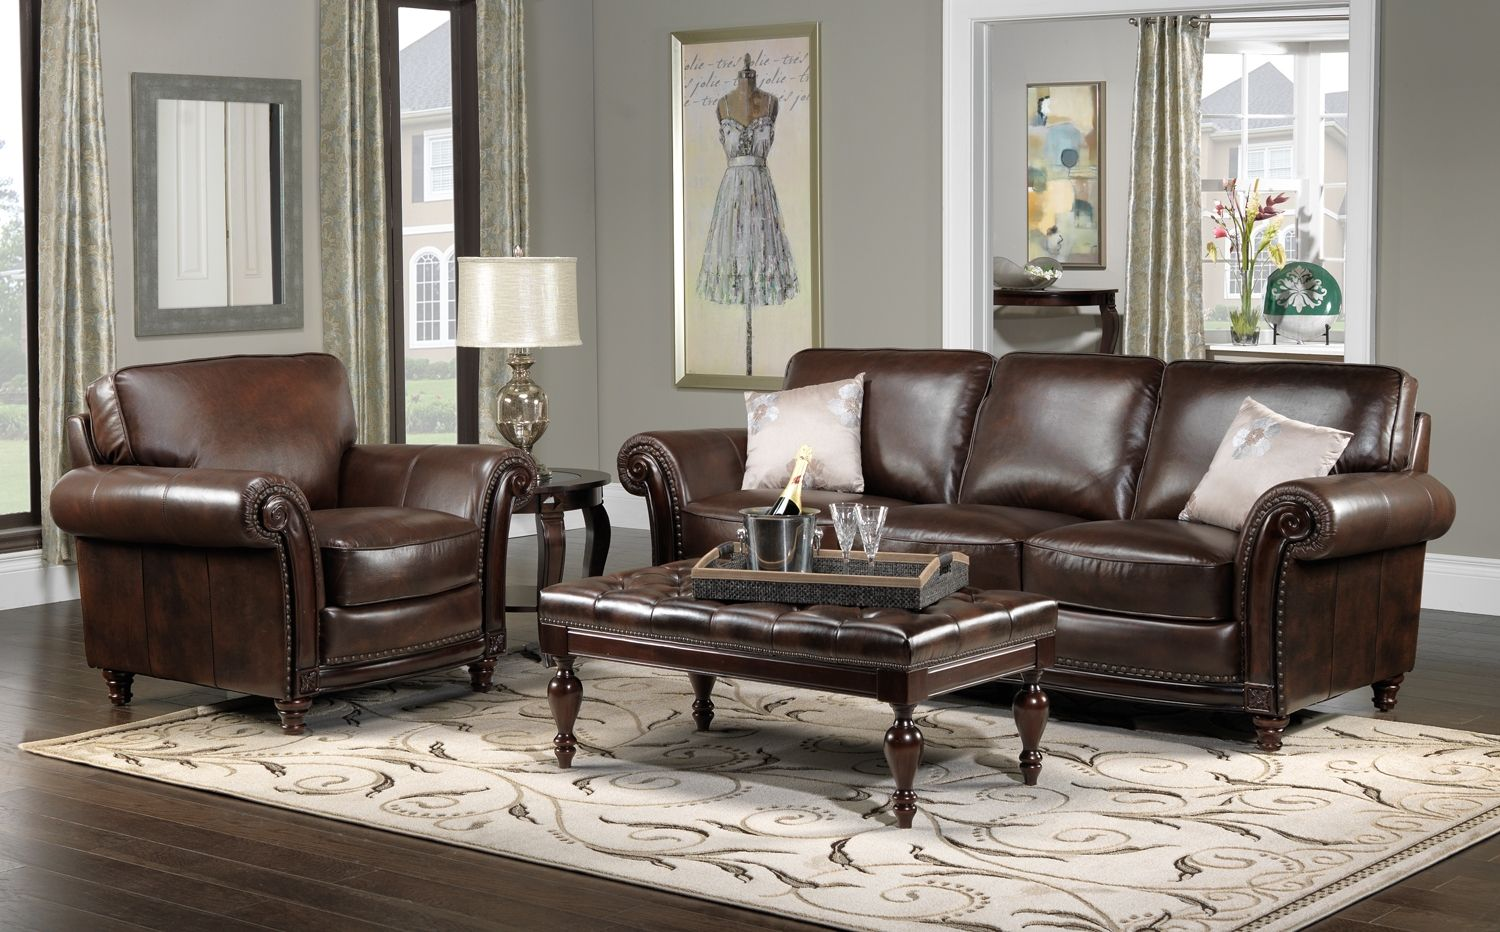 Dream house decor ideas for brown leather furniture gngkxz for Living room designs brown furniture